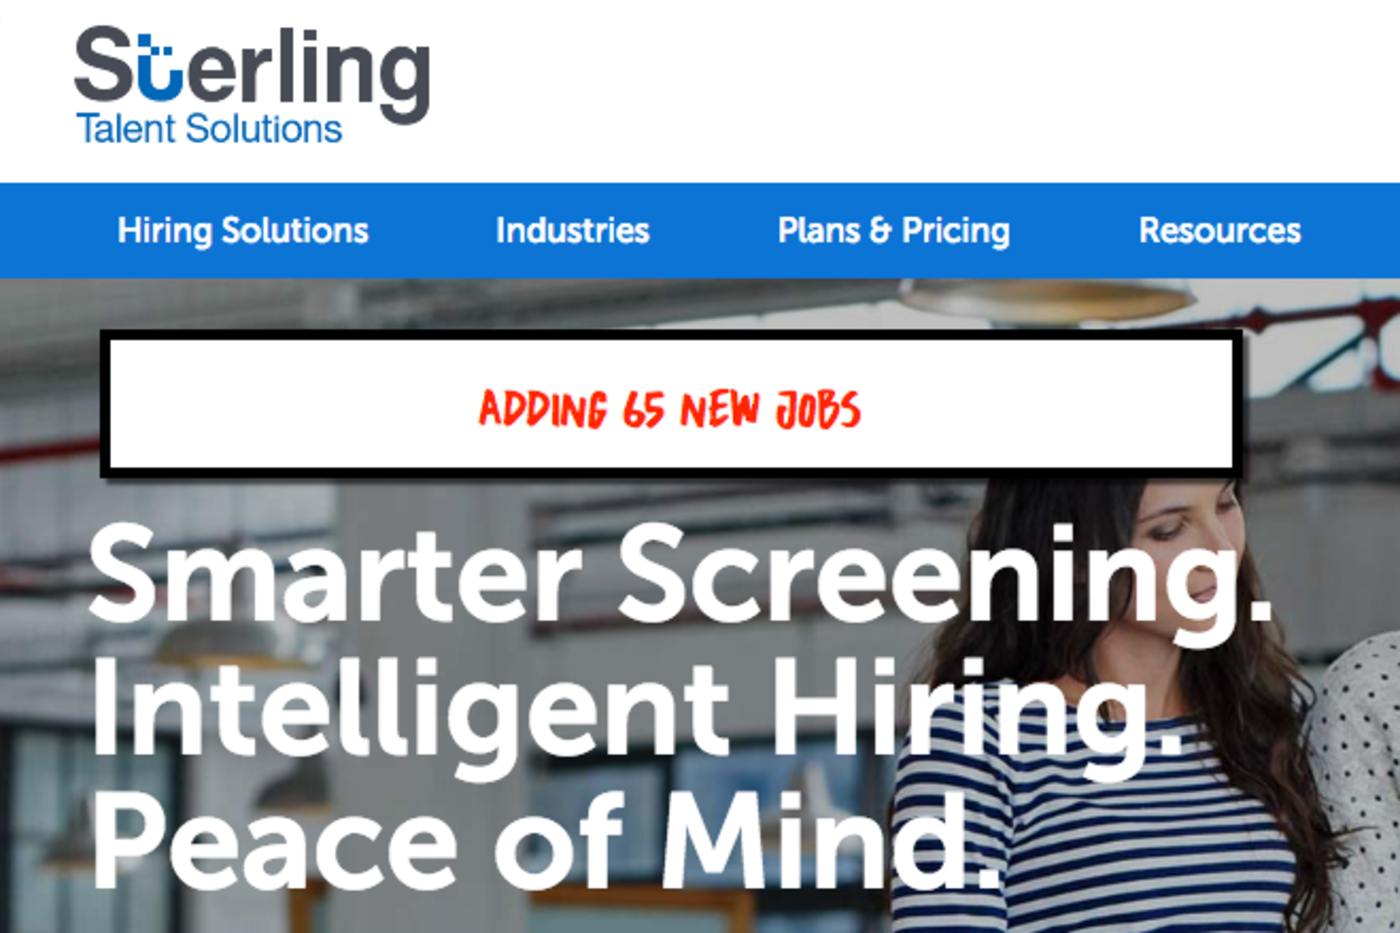 Sterling Talent Solutions to add 65 New Jobs Near Cleveland